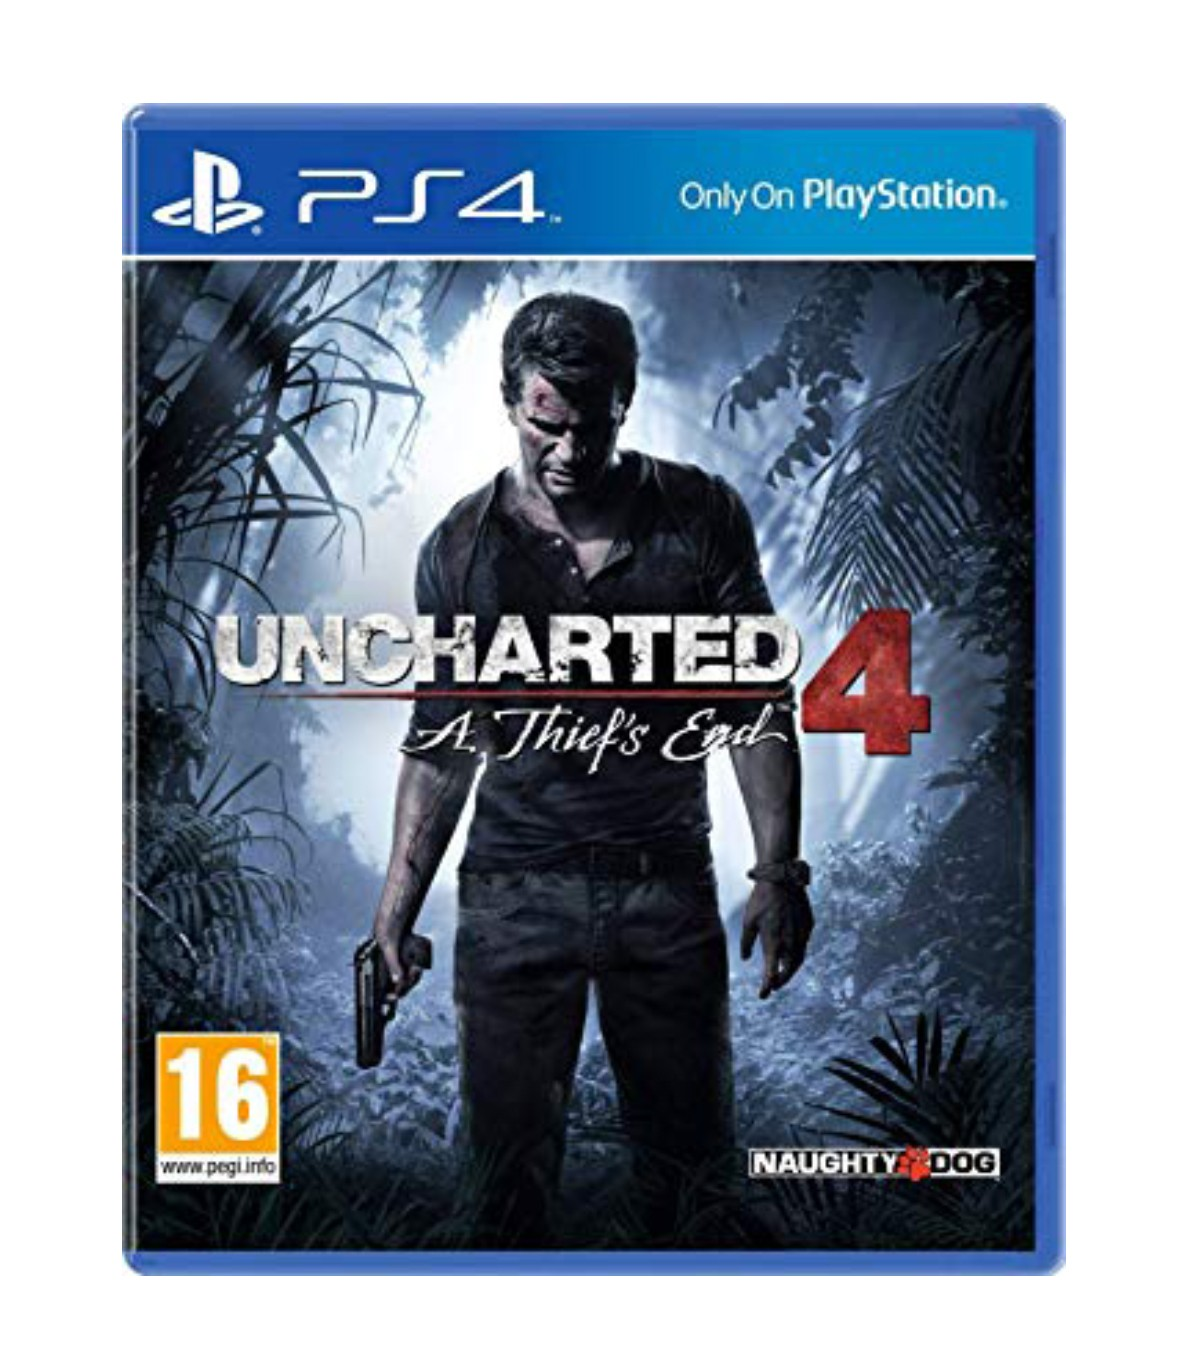 بازی Uncharted 4: A Thief's End - پلی استیشن 4